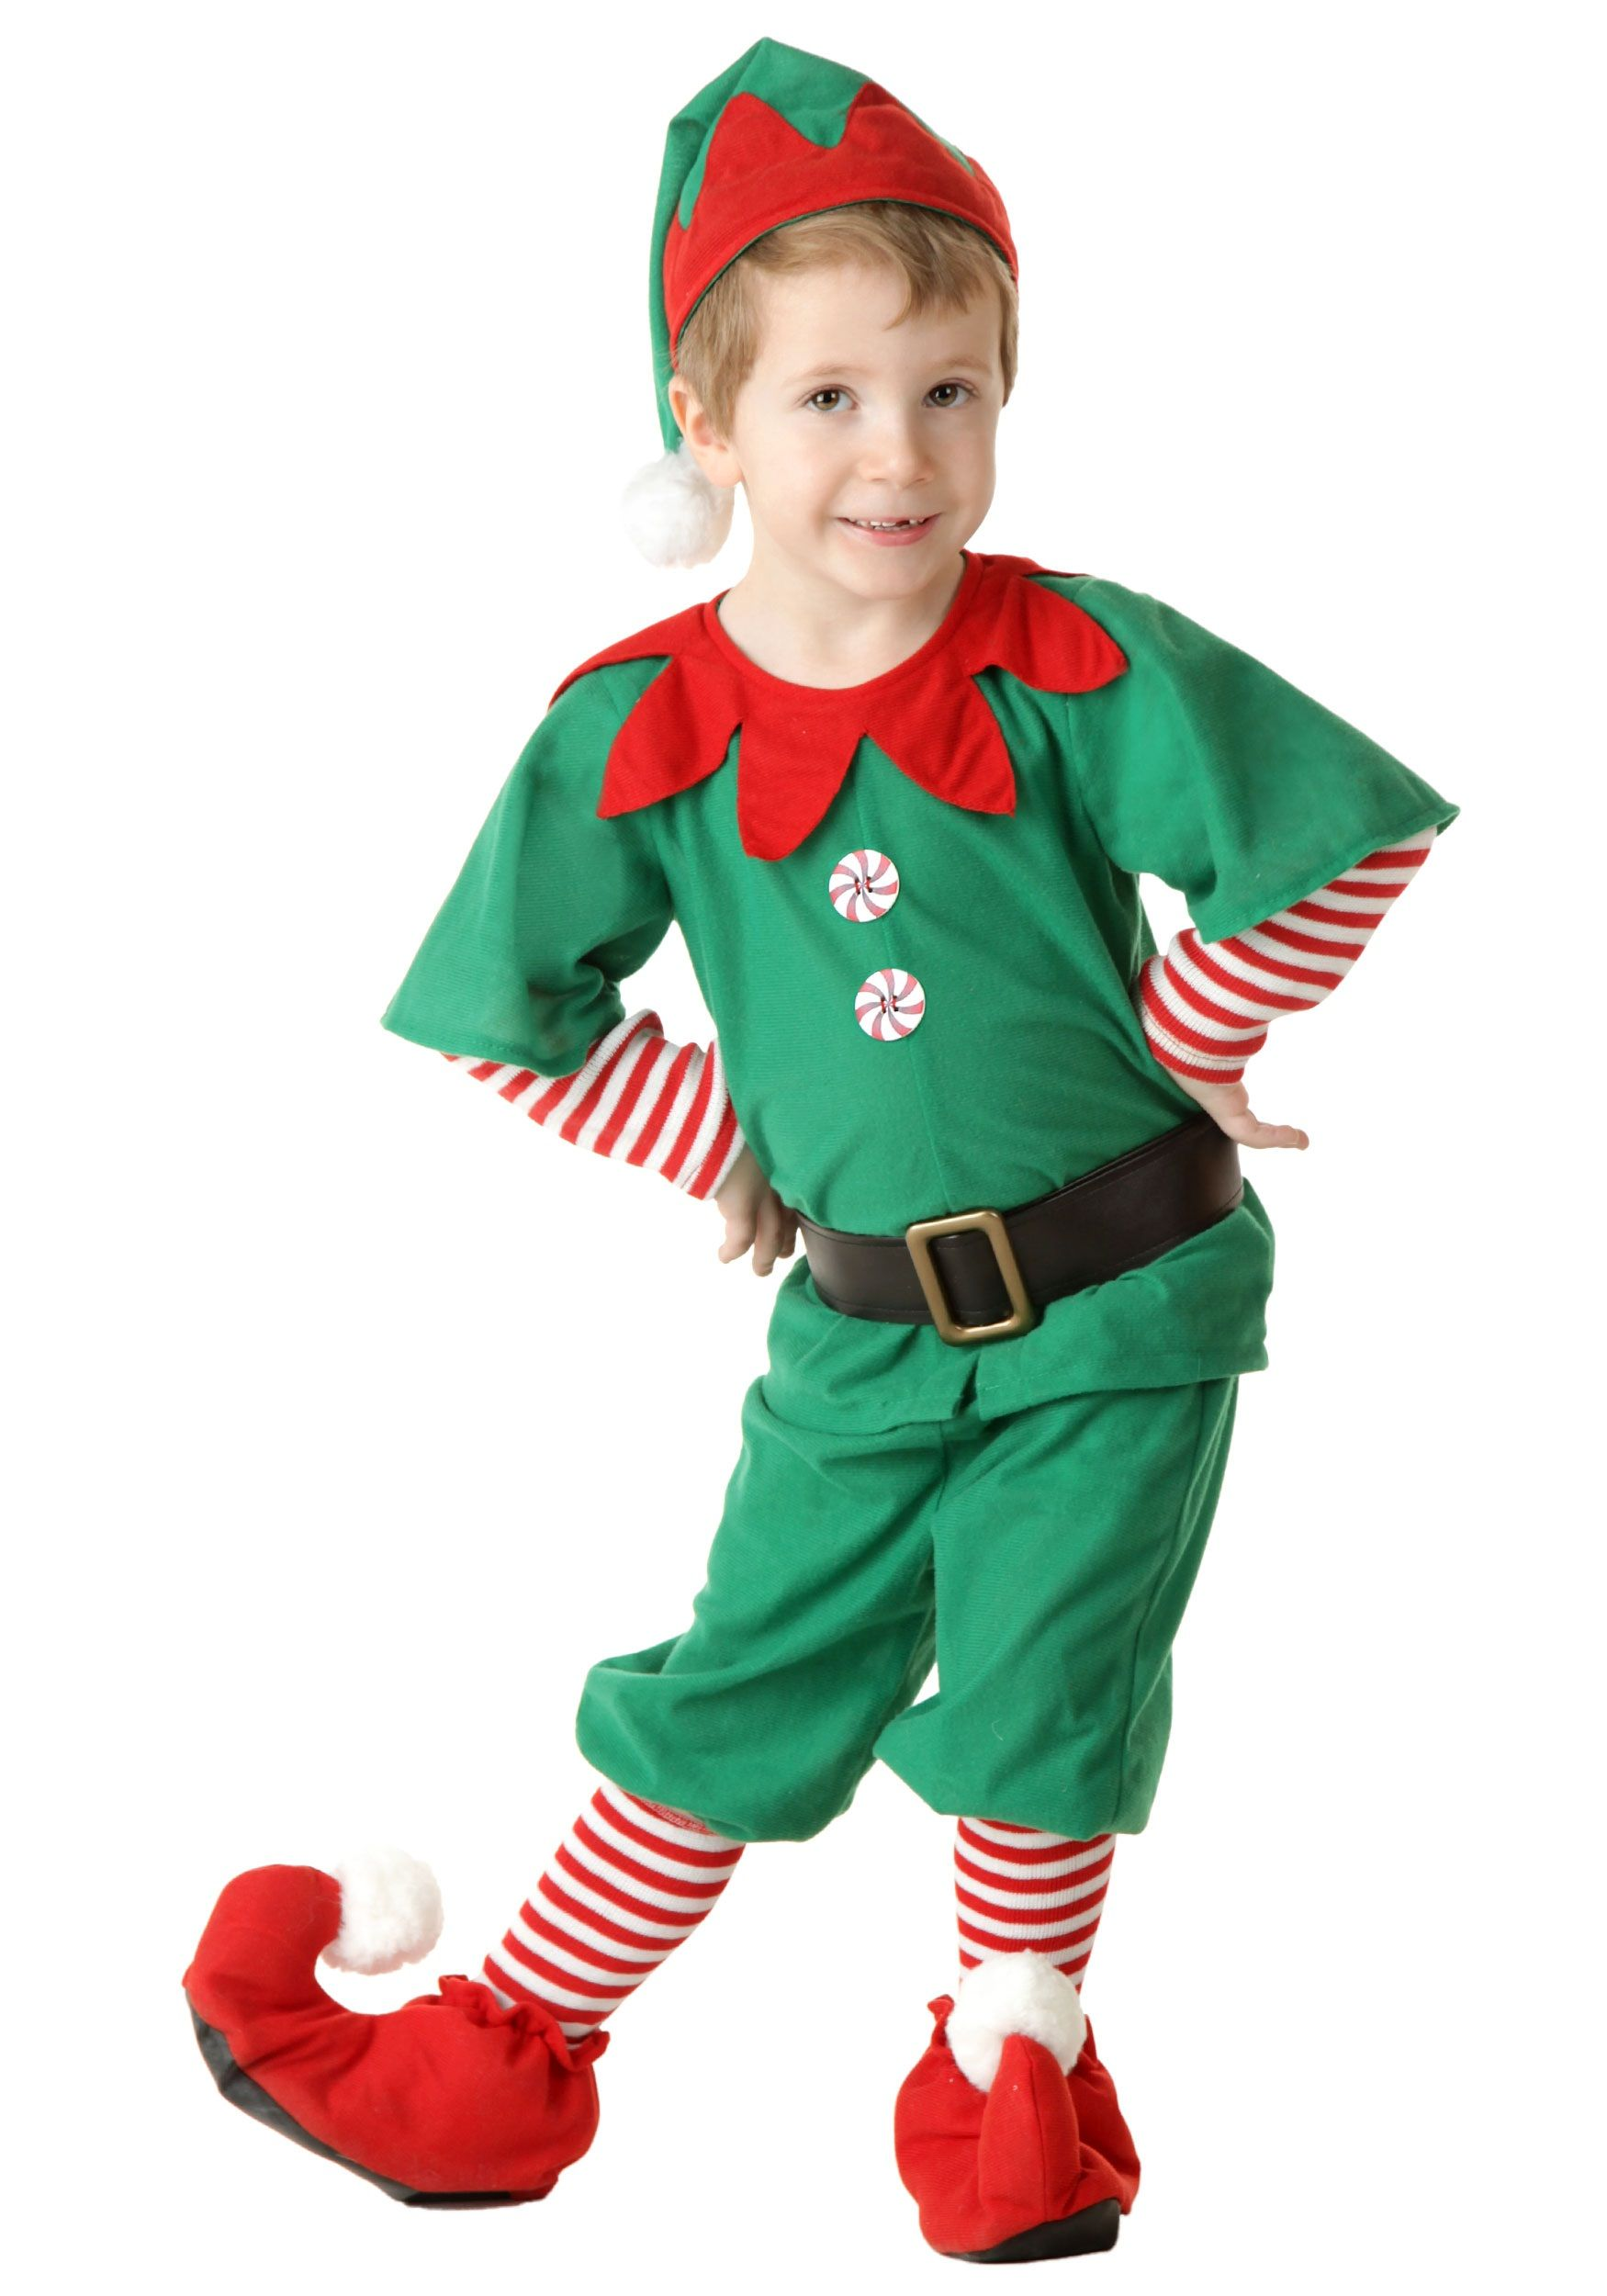 ba8d82e3d5f43 Toddler Happy Christmas Elf Costume